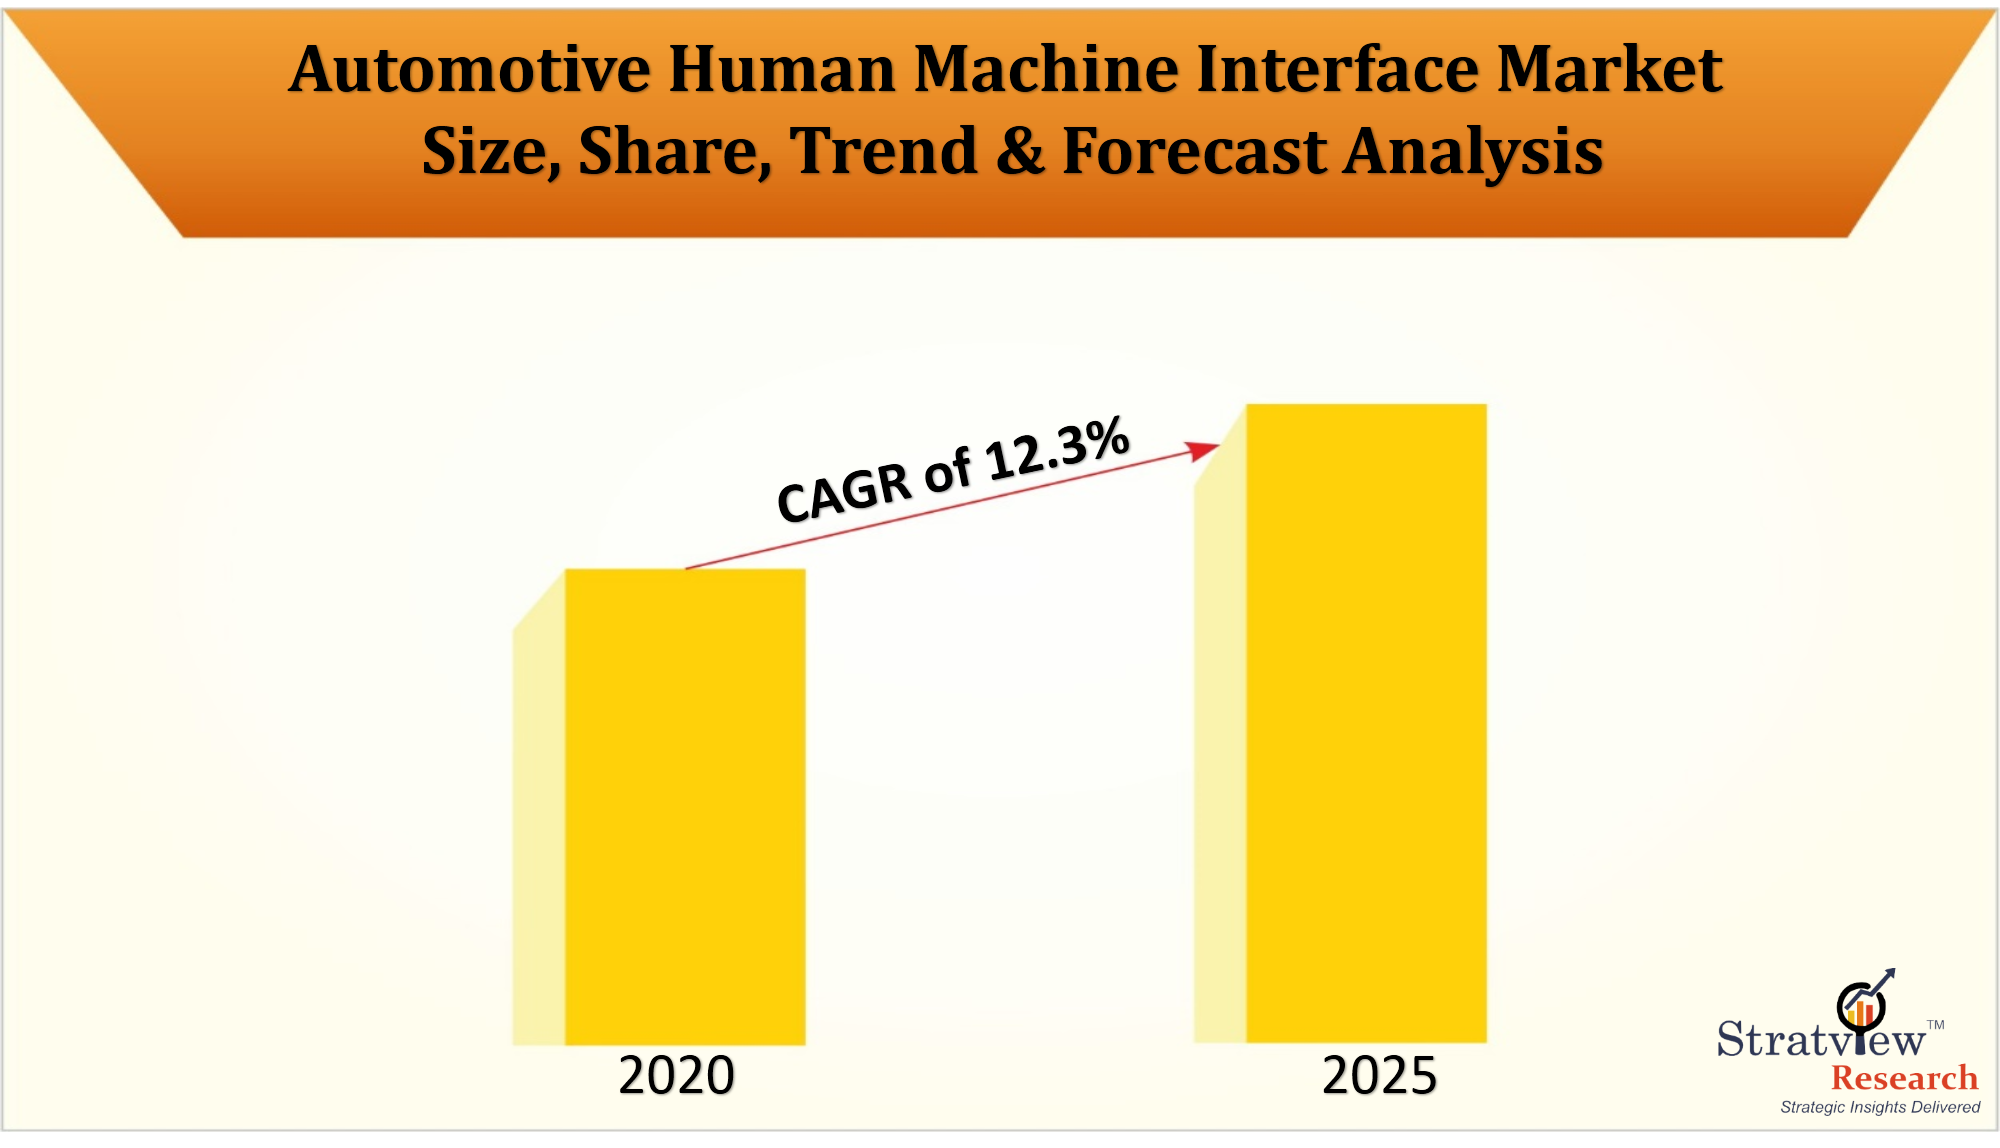 Automotive Human Machine Interface Market to offer profitable growth during 2020-25 with a healthy CAGR of 12.3%